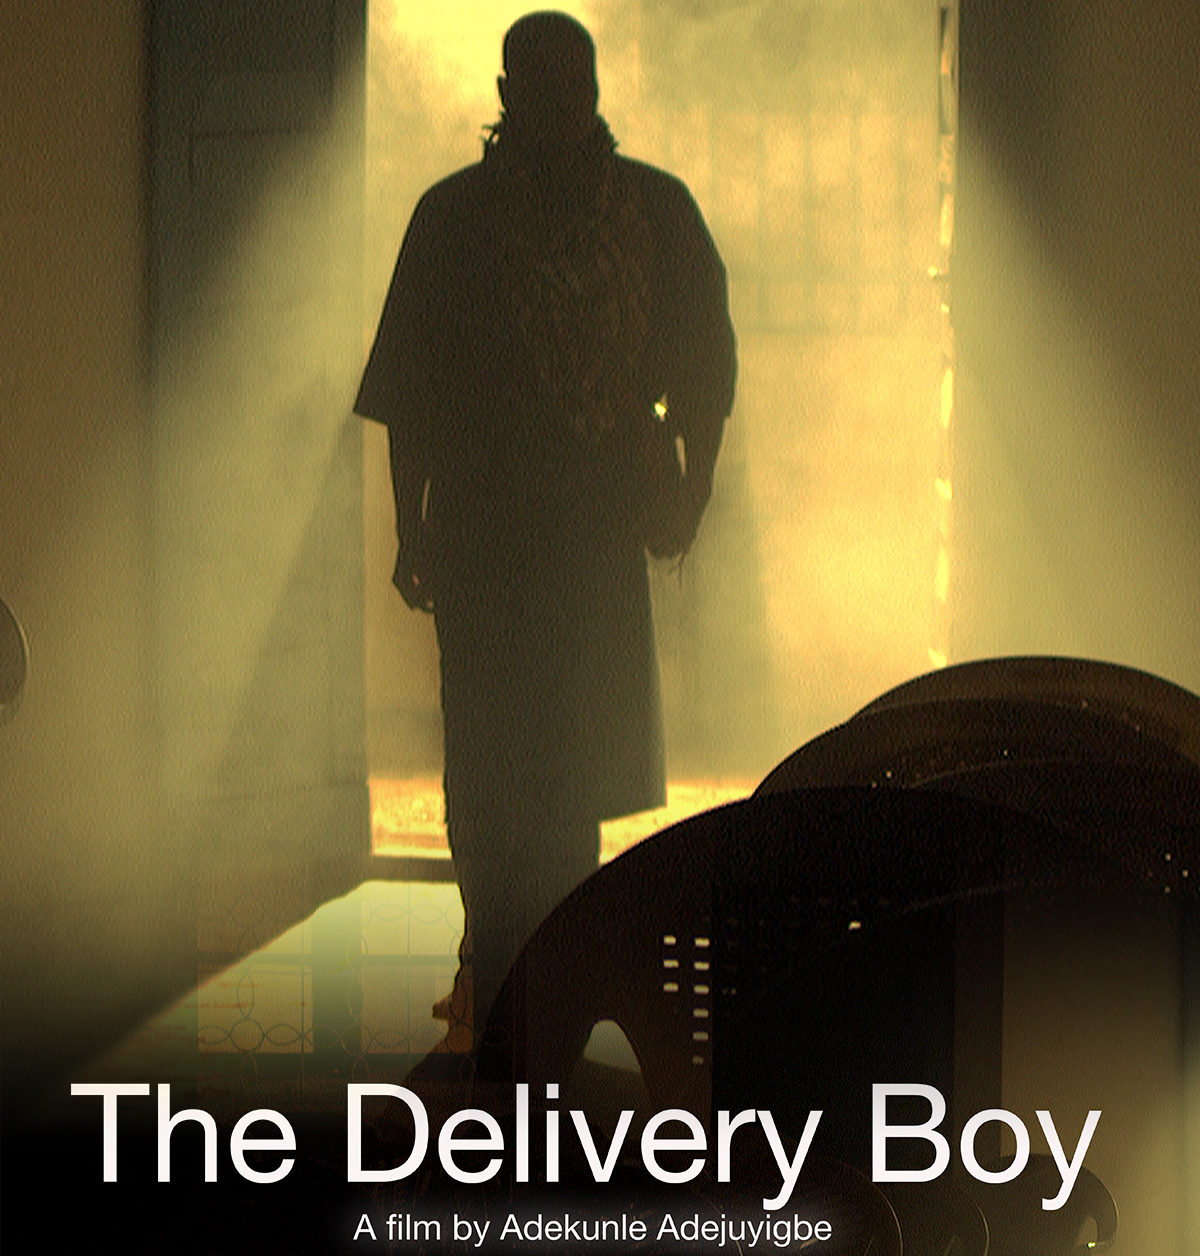 The Delivery Boy